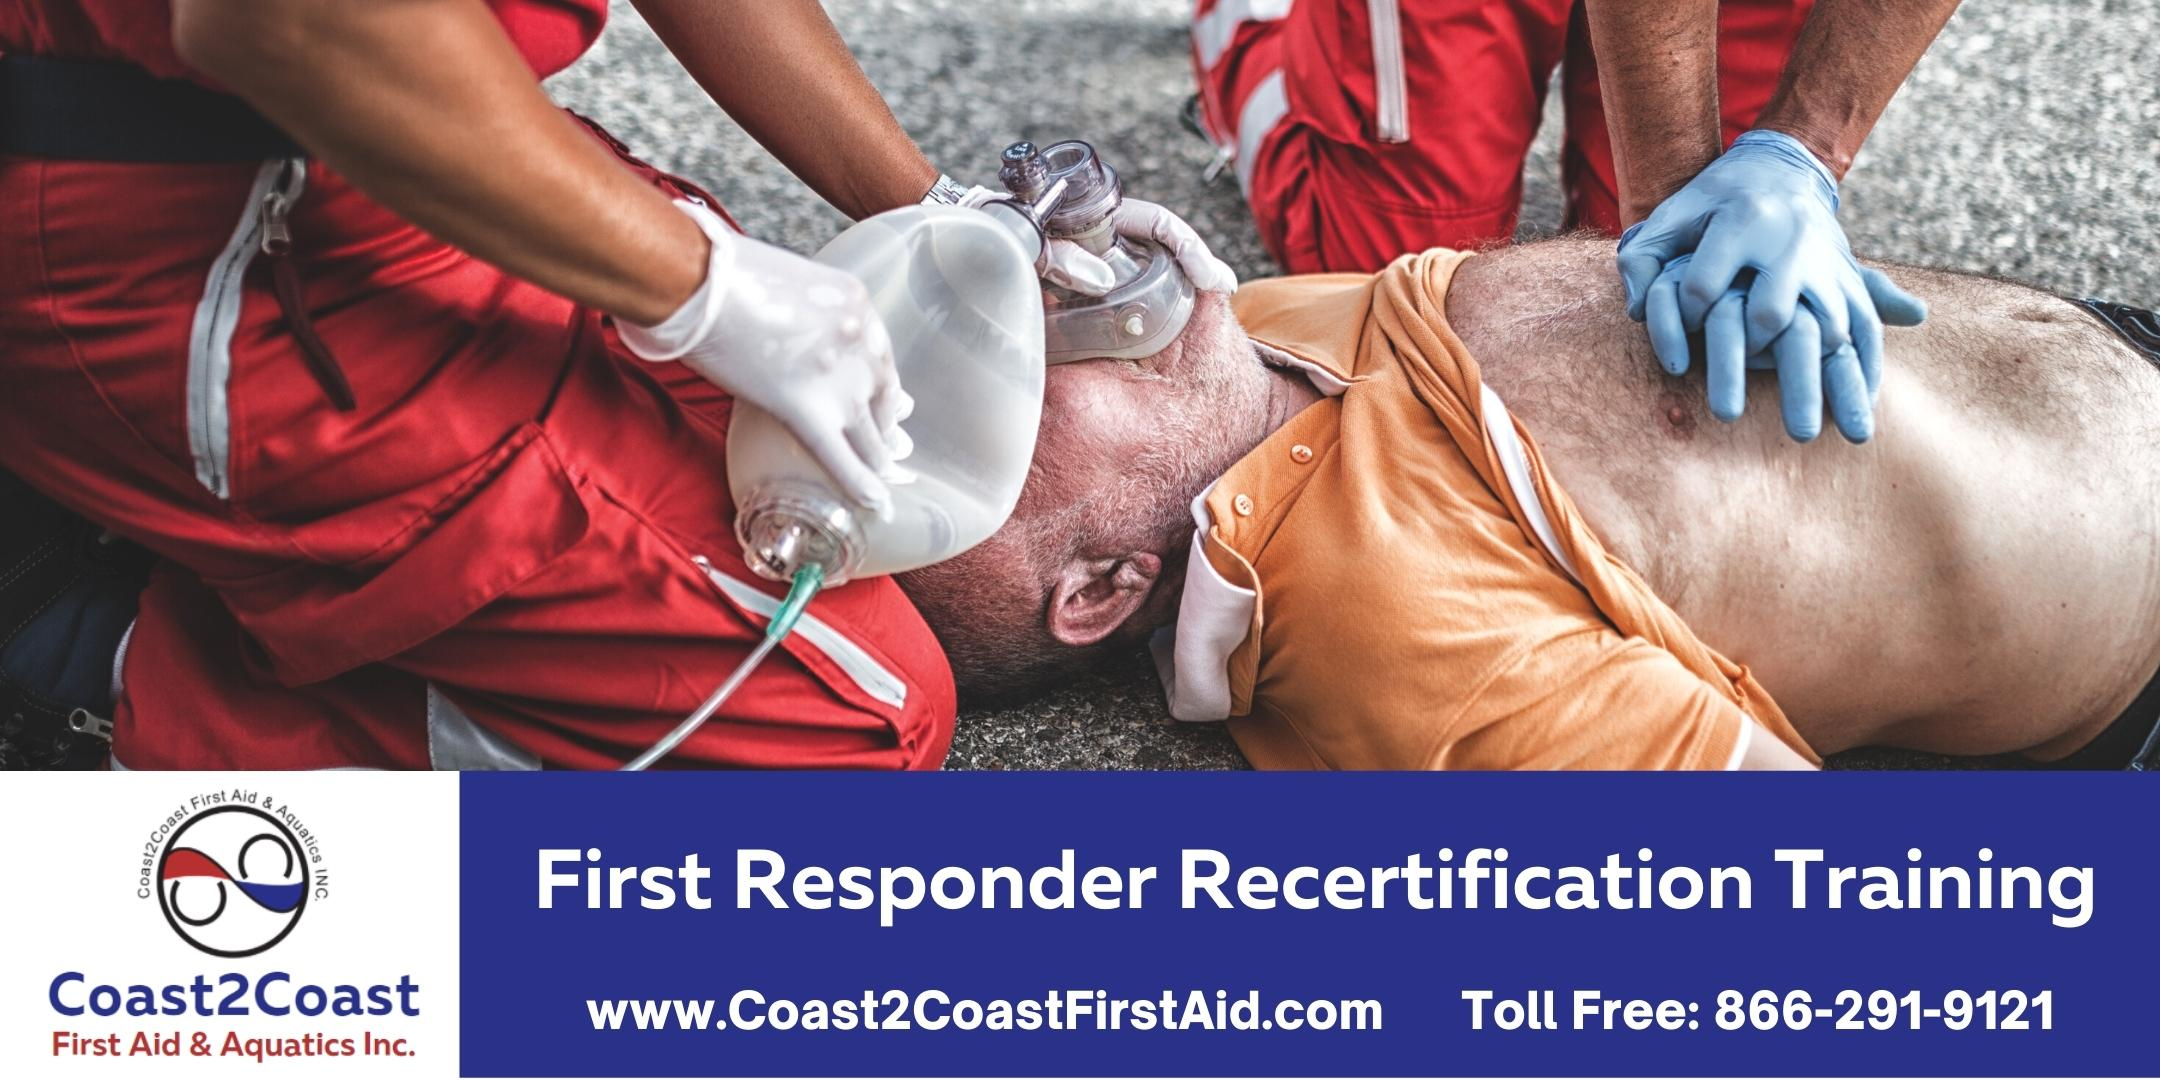 First Responder Recertification Course - Downtown Toronto